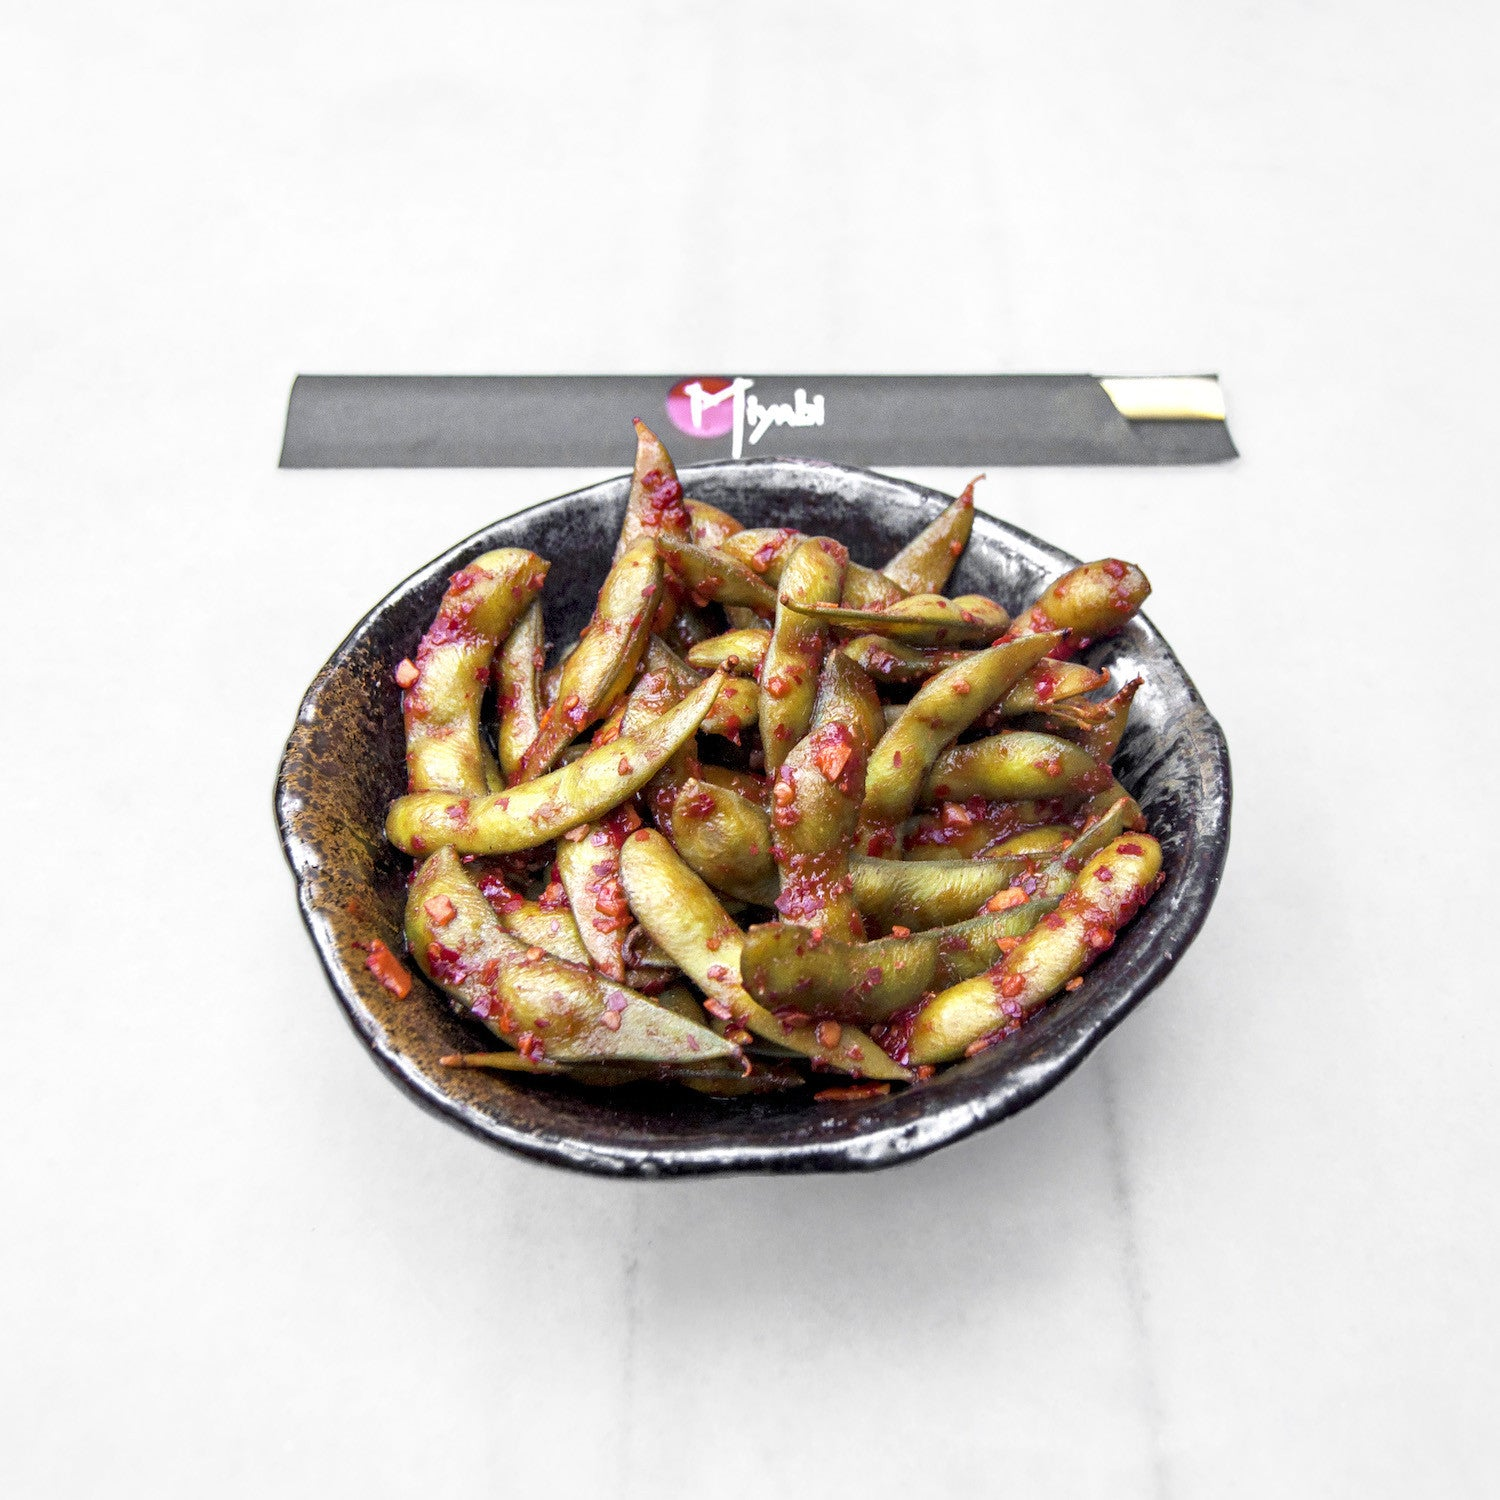 Edamame with Chili Garlic Sauce